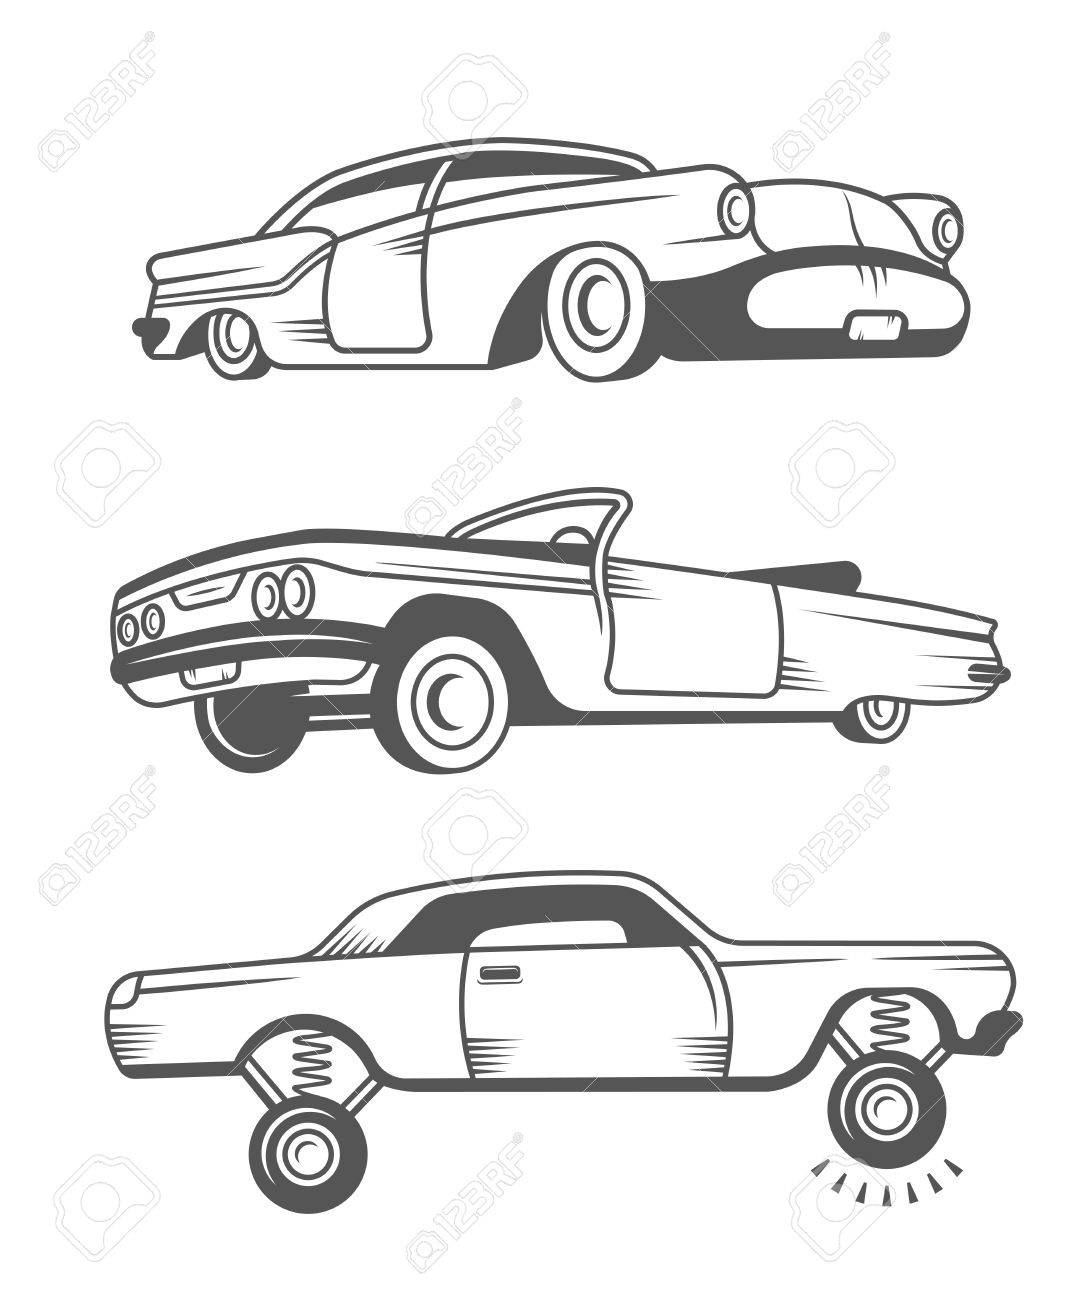 Set Vintage Lowrider Cars And Elements Design Collection Black White Classic Old Retro